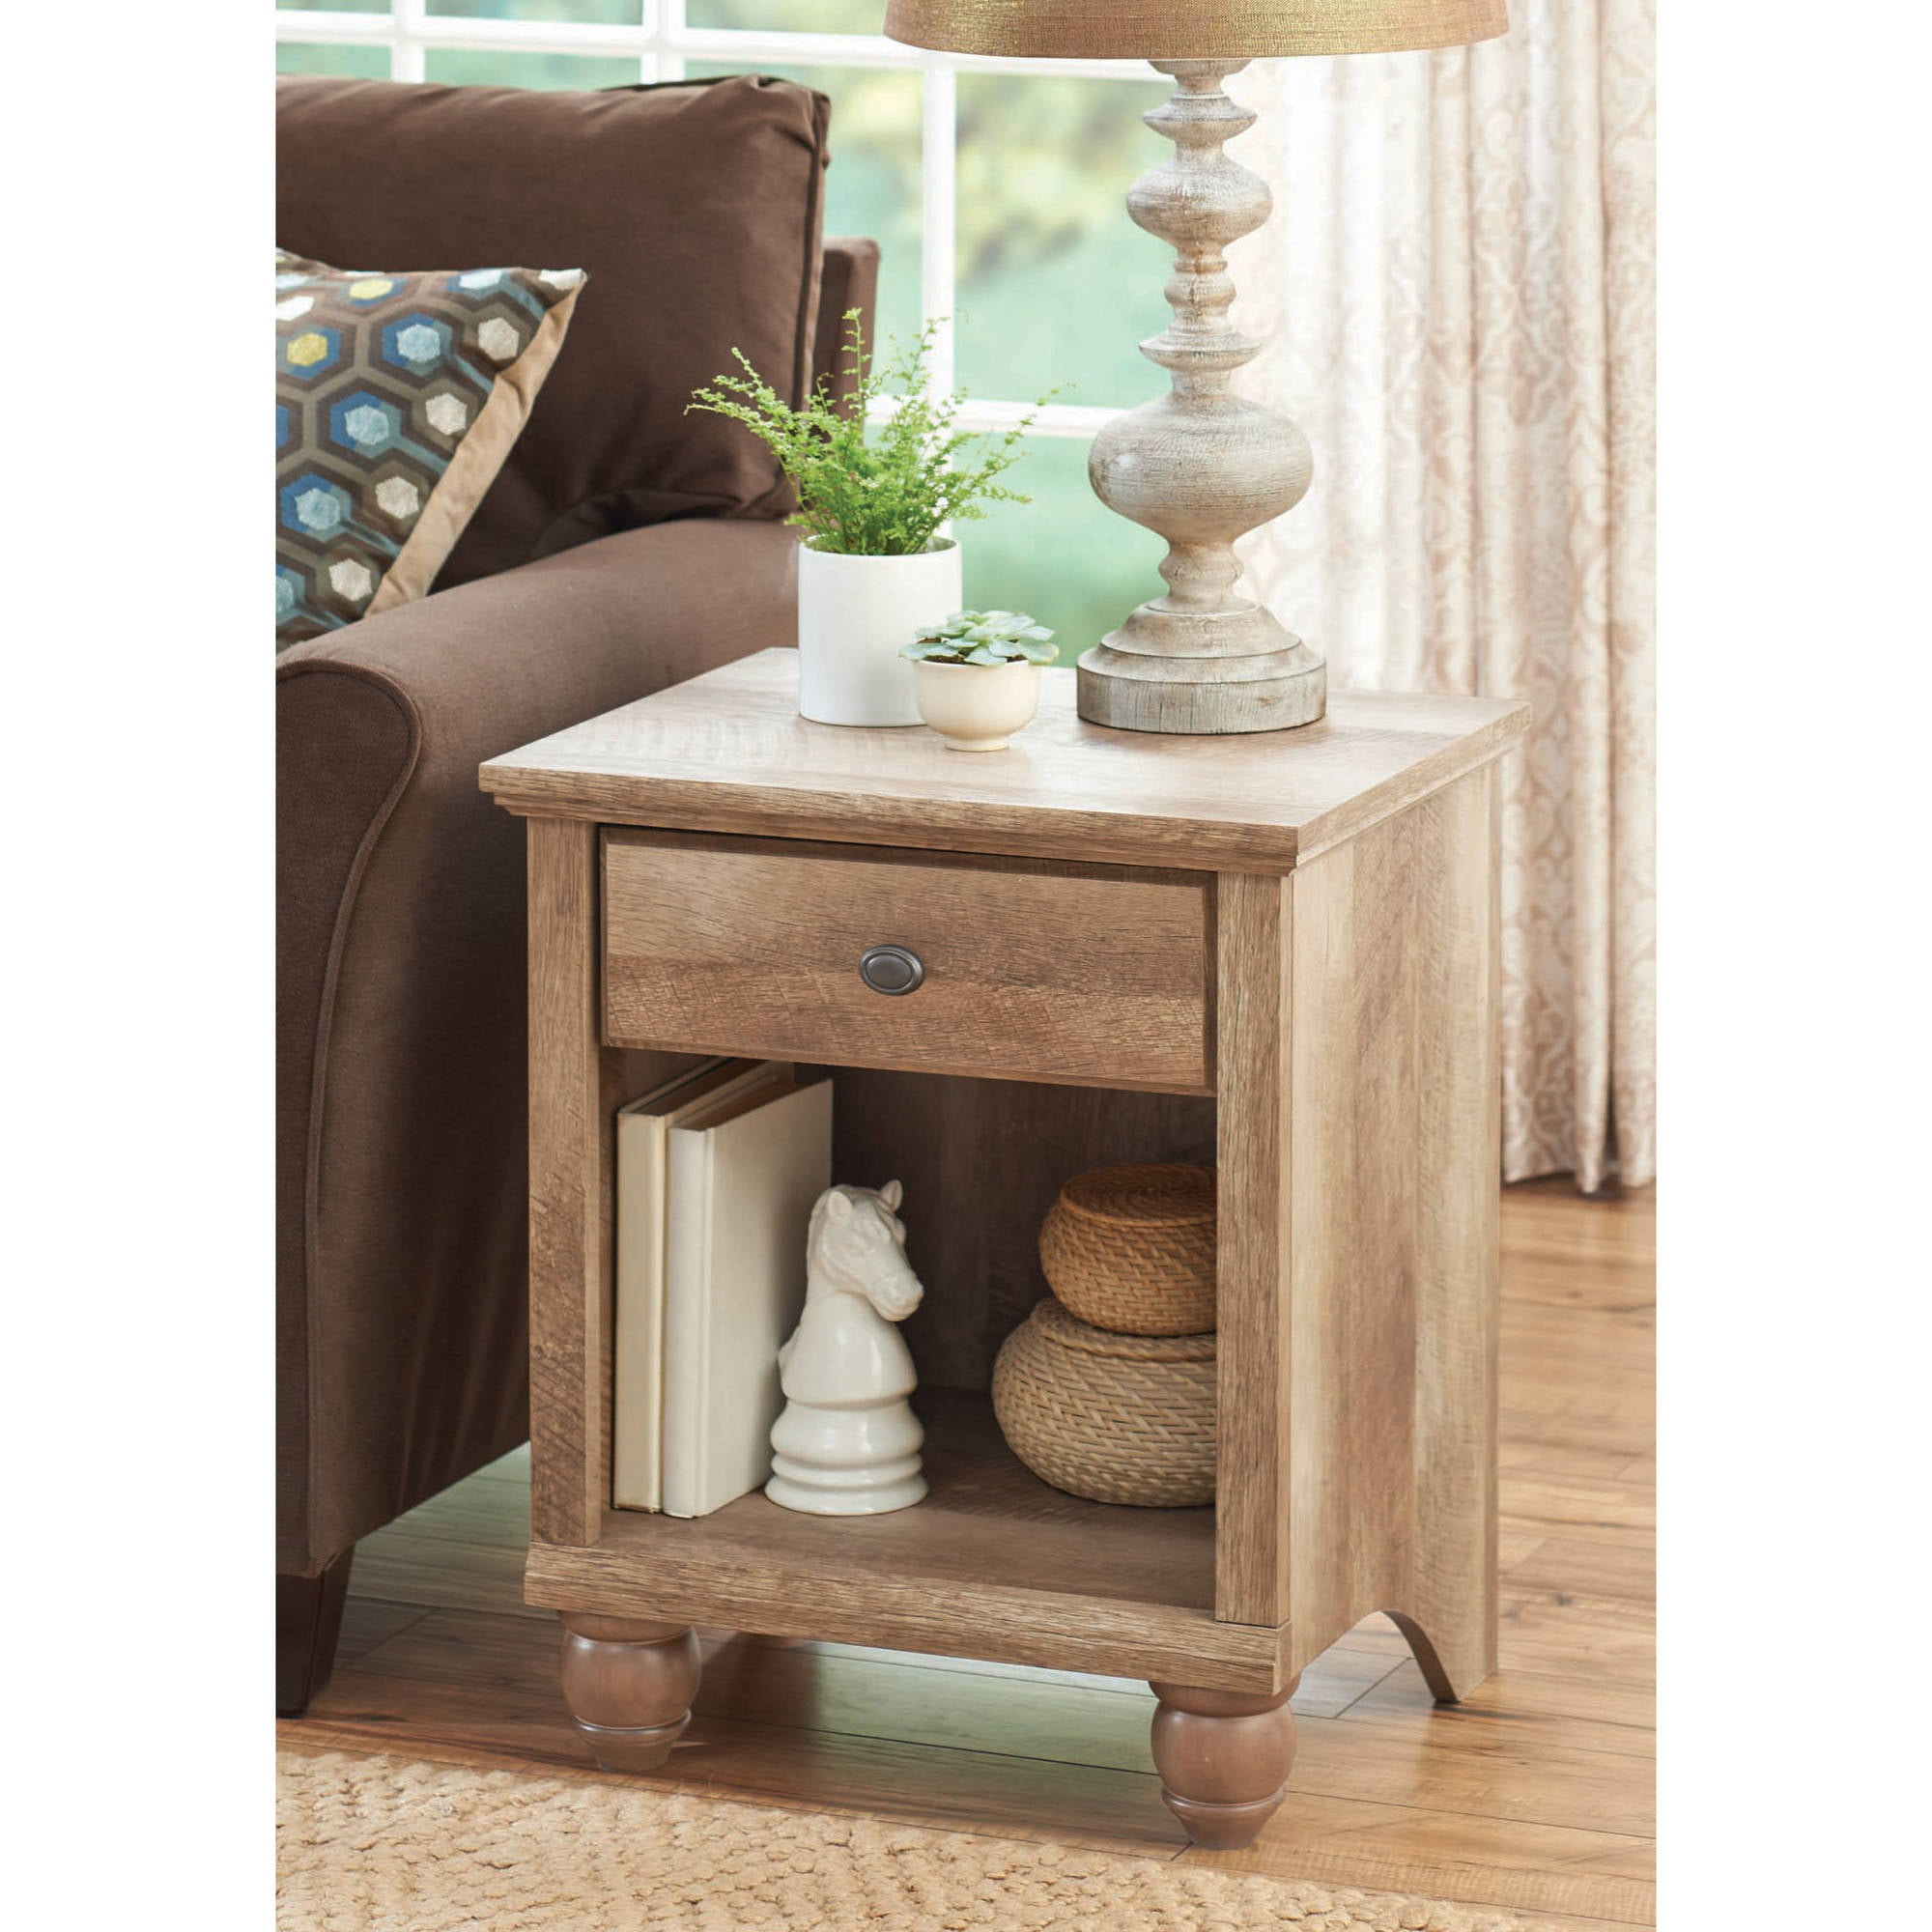 End Tables & Side Tables - Walmart.com